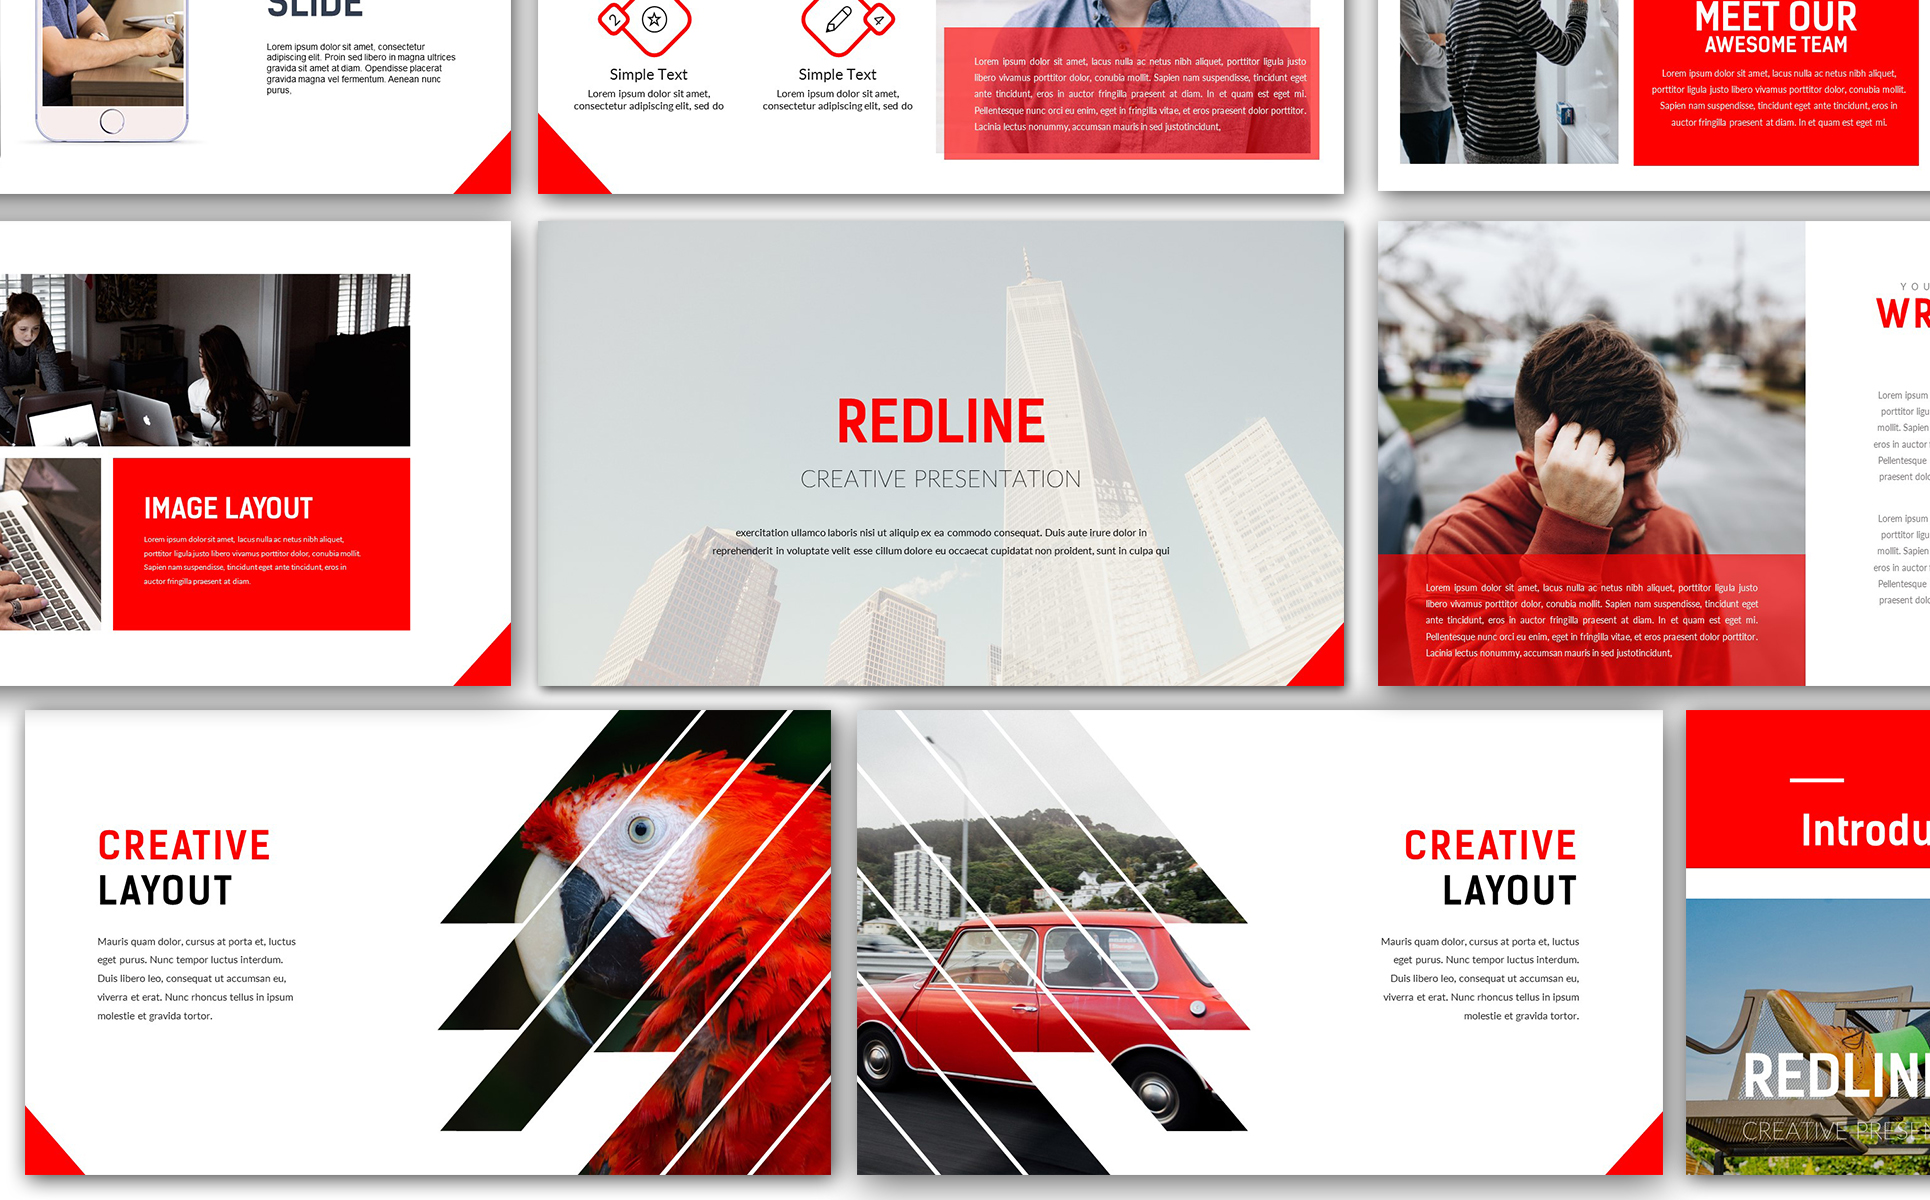 Redline Creative Powerpoint Template 67143